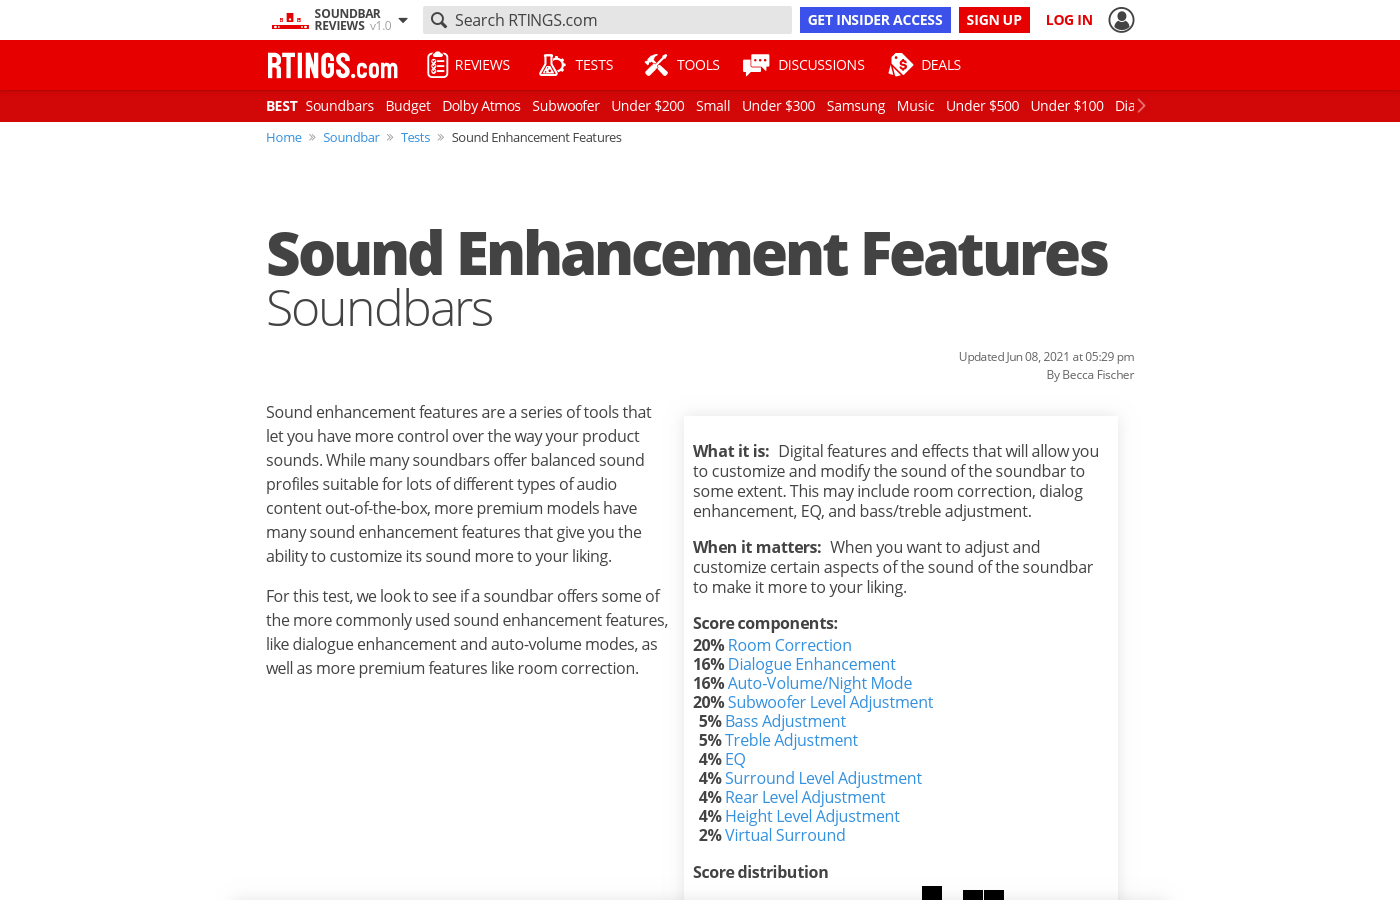 Sound Enhancement Features: Soundbars